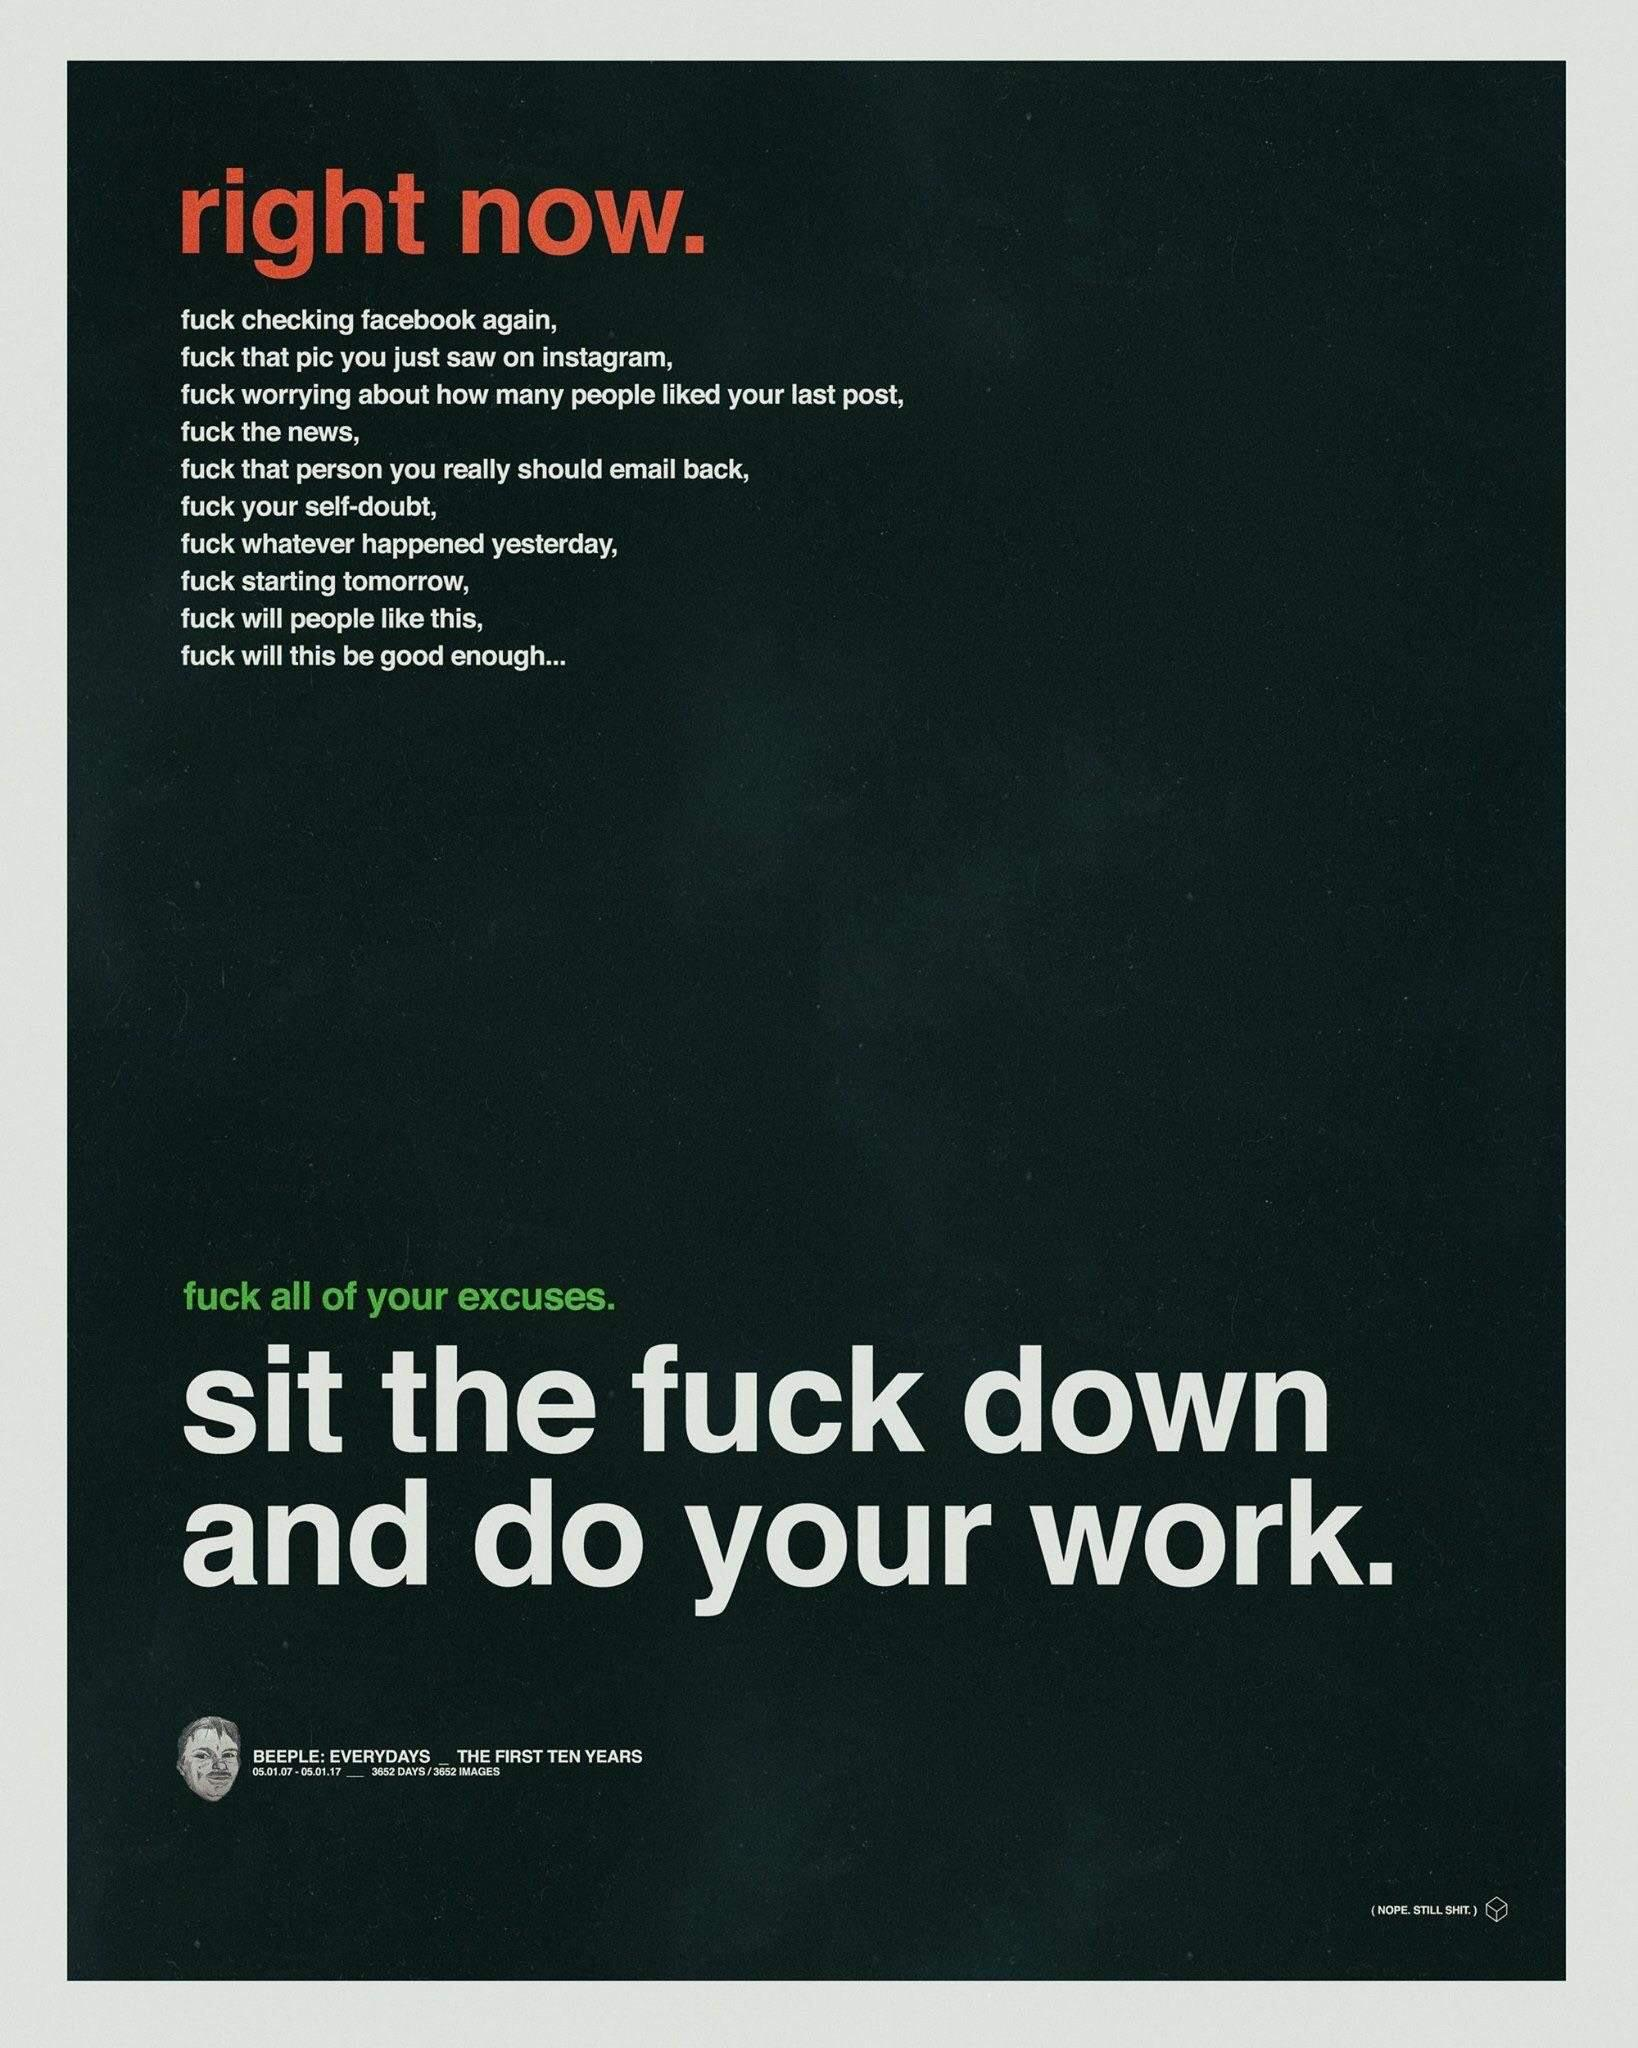 [IMAGE] Do your fucking work.